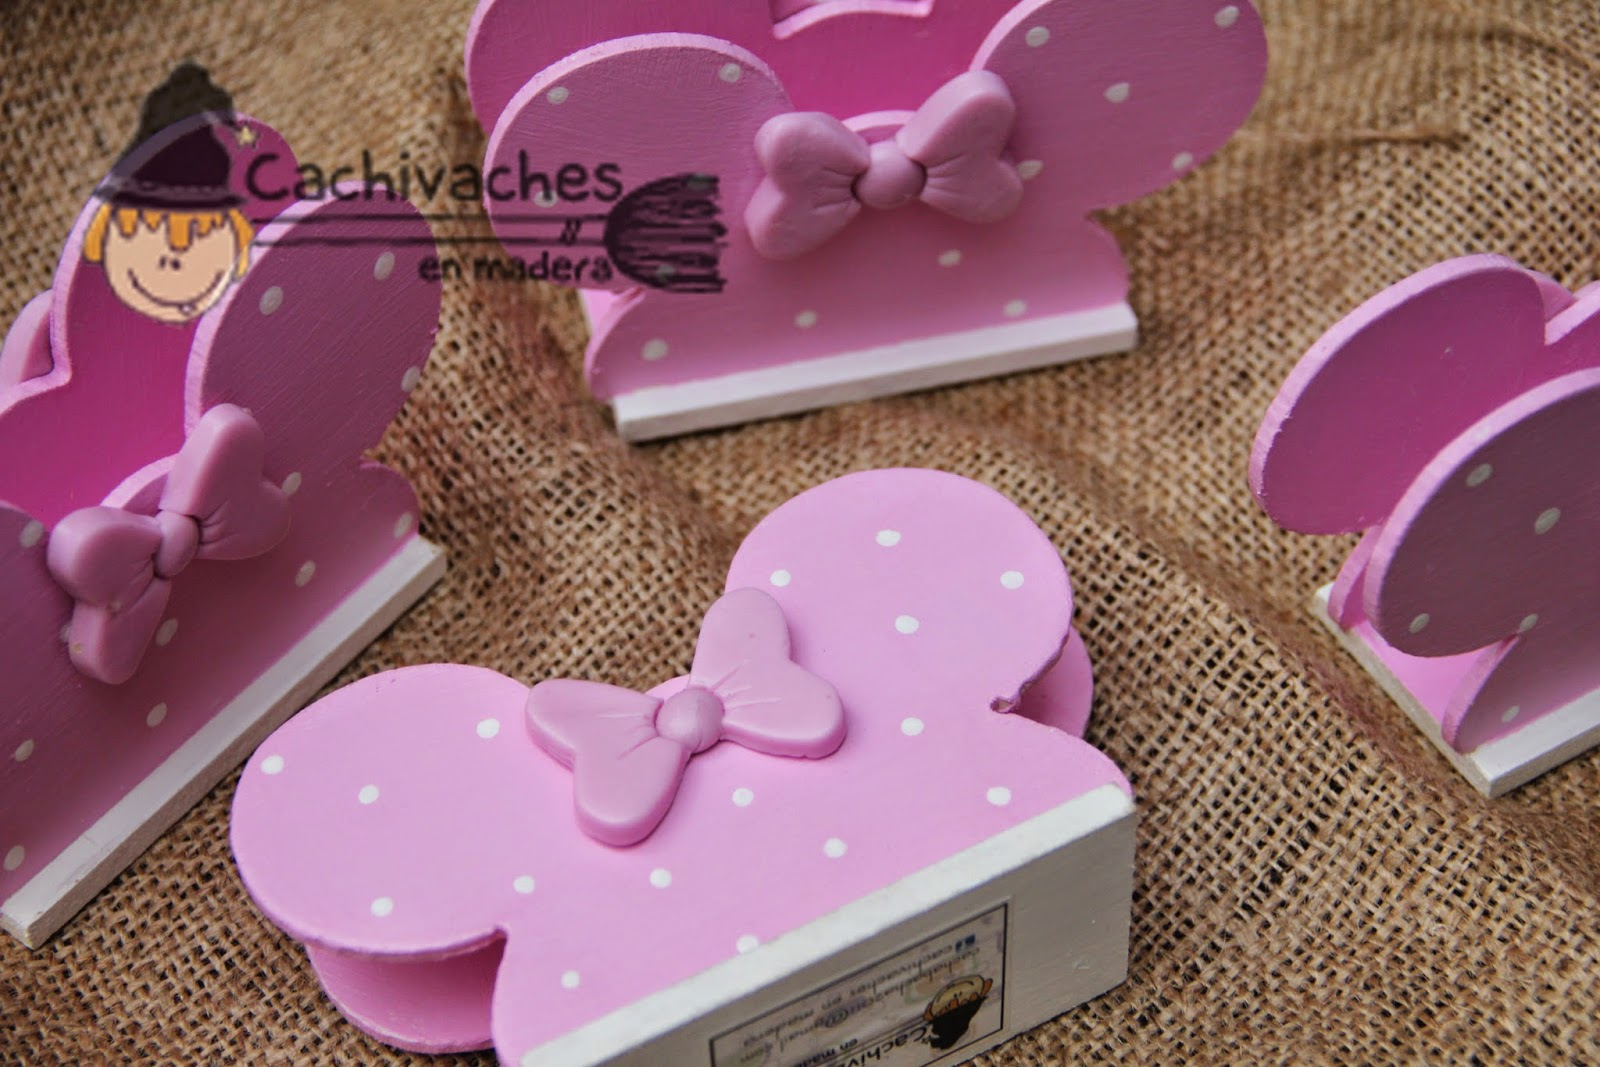 Cachivaches En Madera Mickey Y Minnie Servilleteros